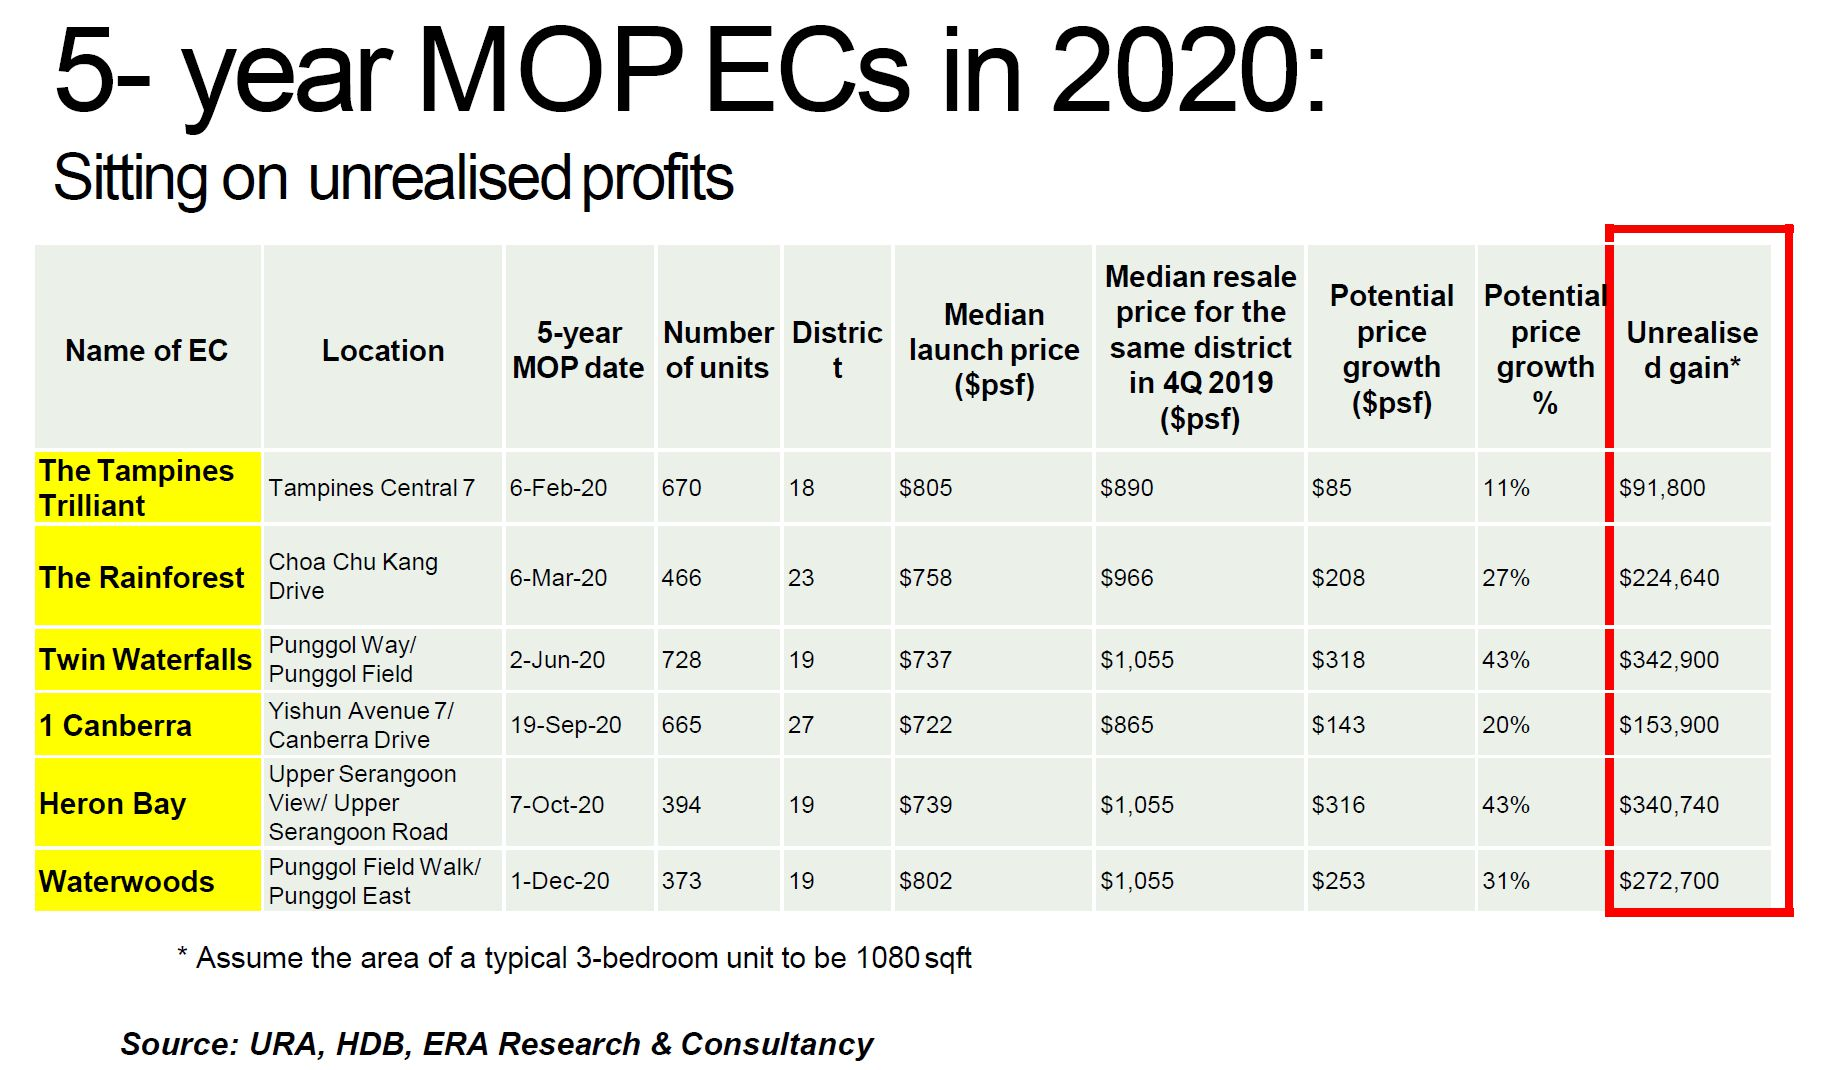 EC Top in 2020